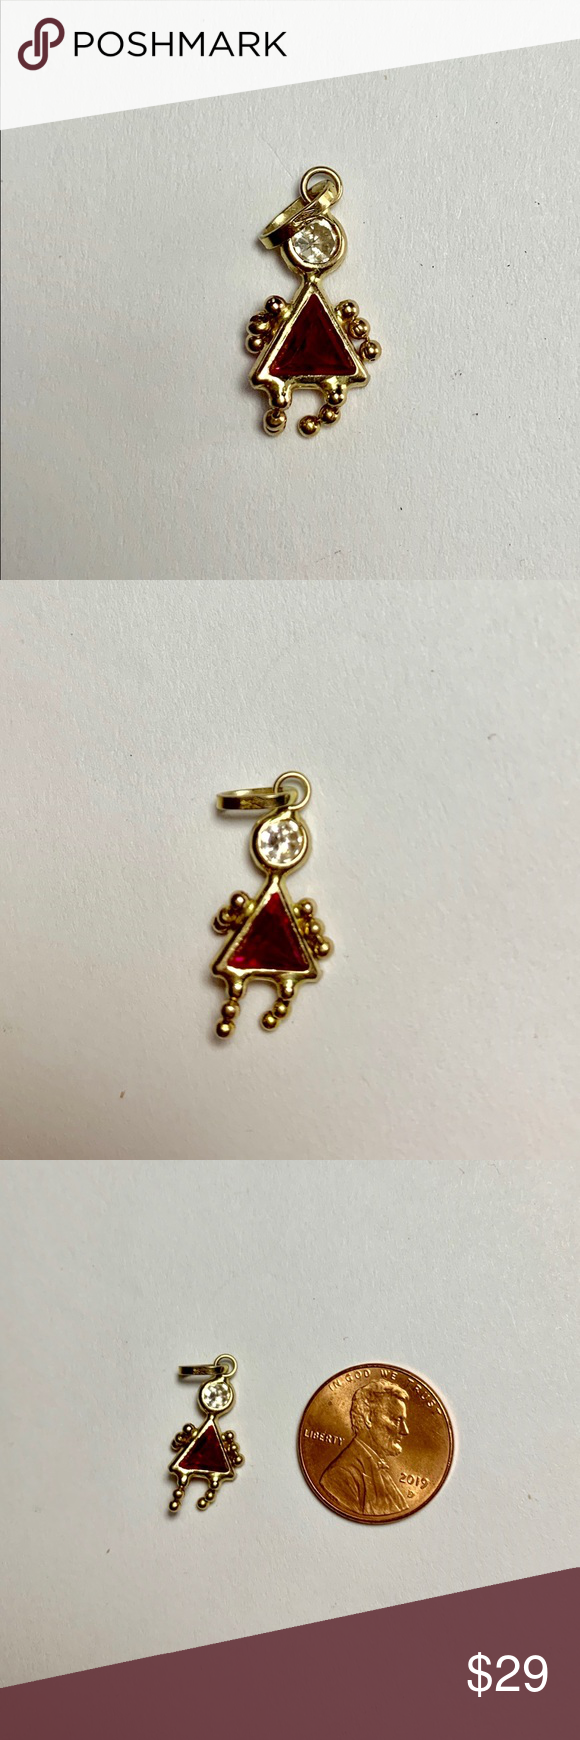 Real 10k Gold Birthstone Babies Girl Charm Red Girl Charm 10k Gold Cubic Zirconia Jewelry